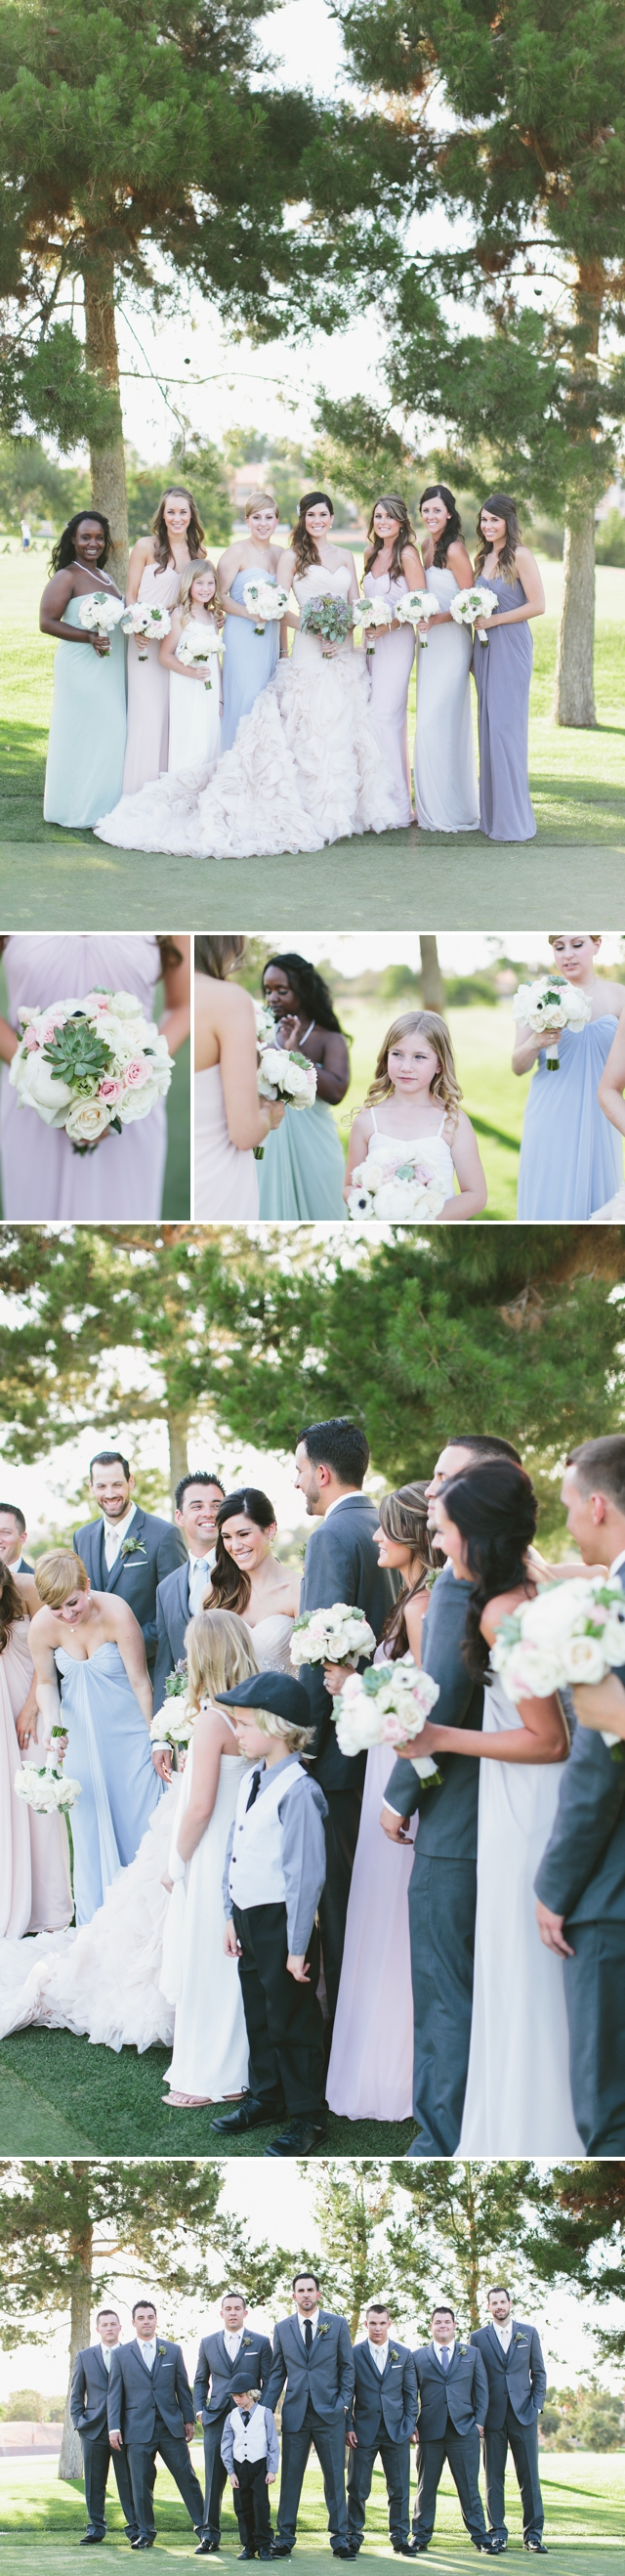 Canyon Gate Country Club Wedding by Meg Ruth Photo Succulent Bouquet, Pink wedding dress